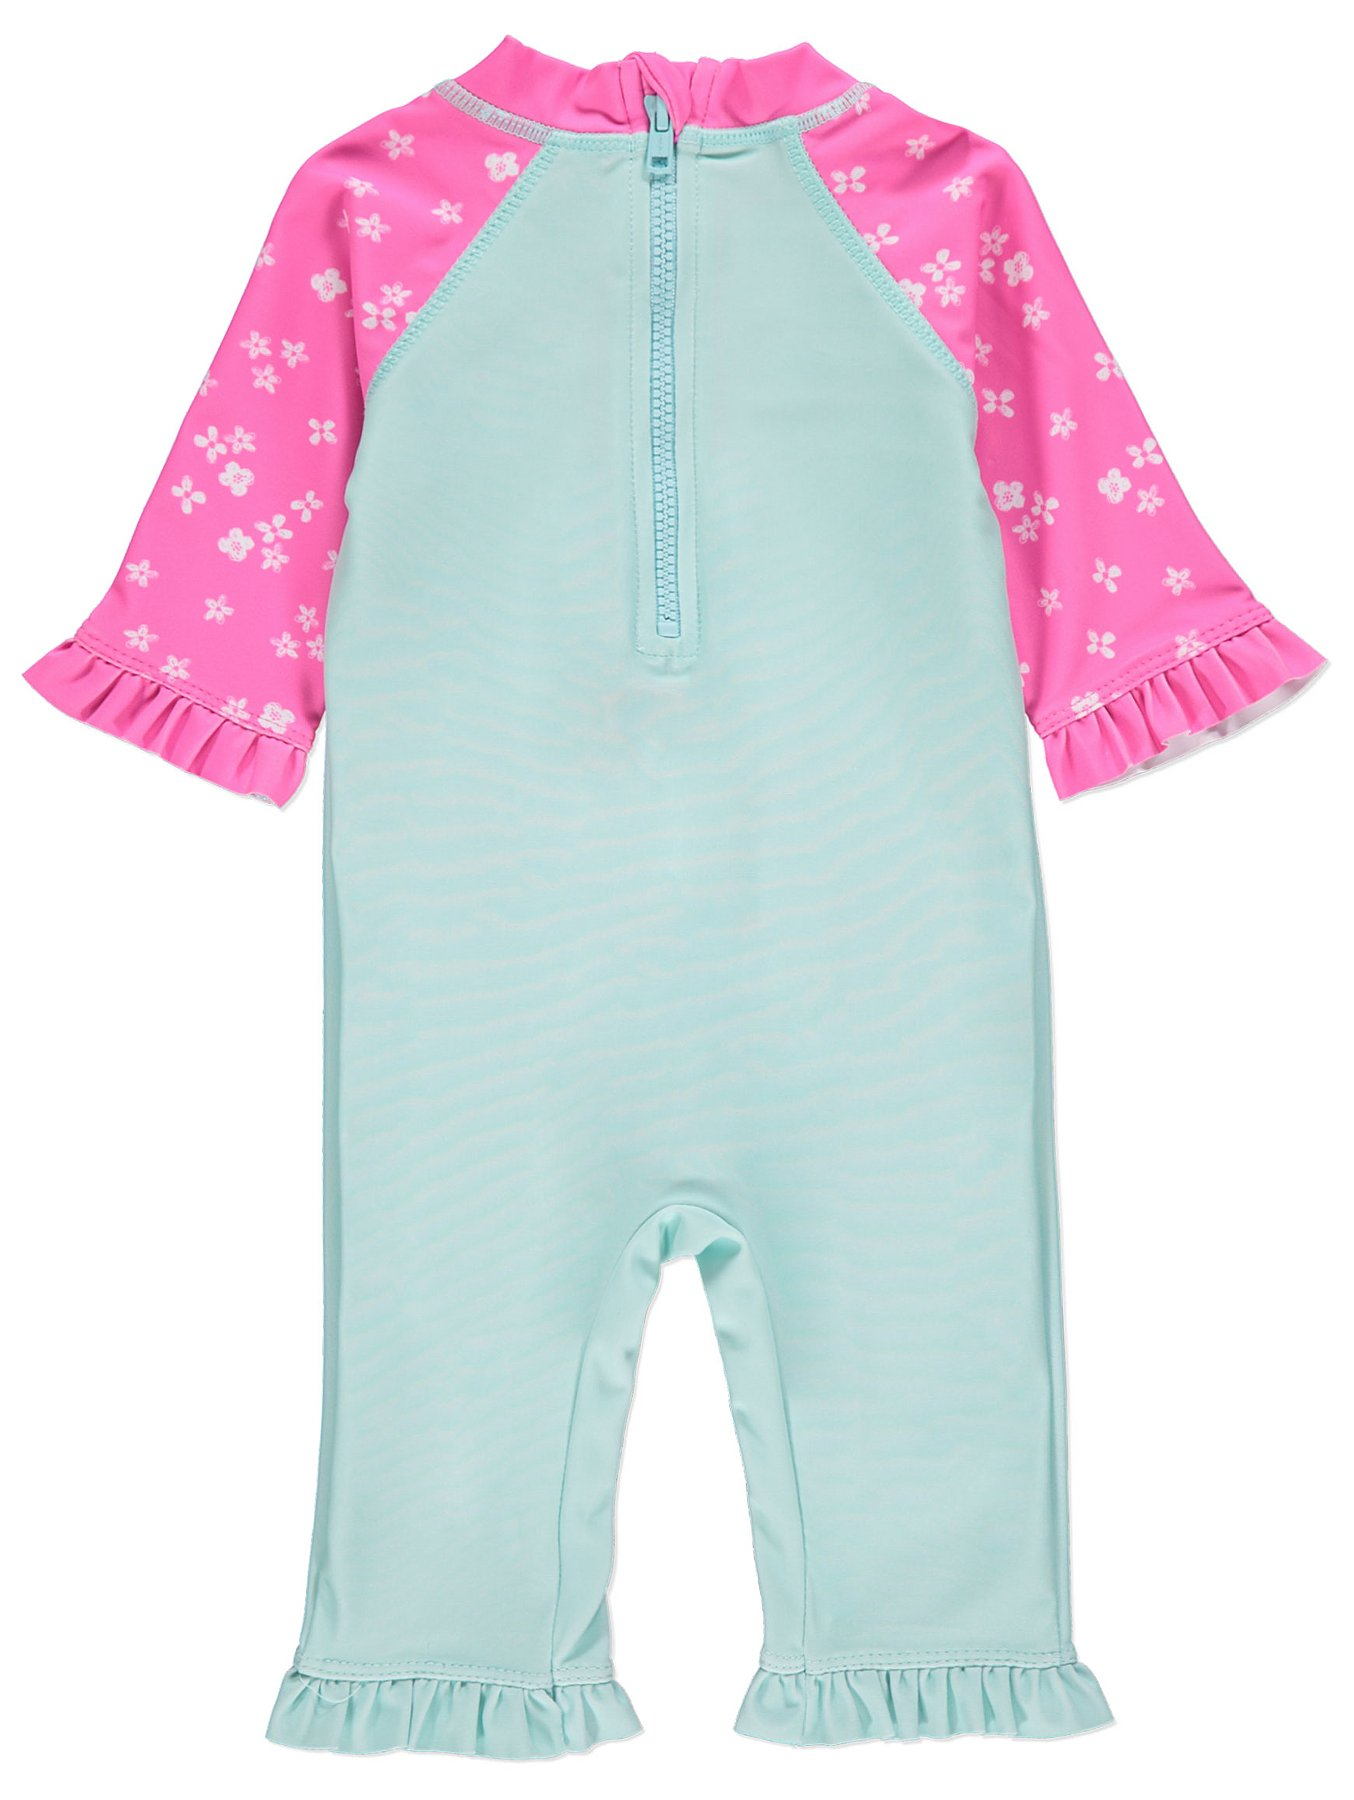 2cdc3530e5 Flamingo Sun Protection UV40 Swimsuit and Hat Set | Baby | George